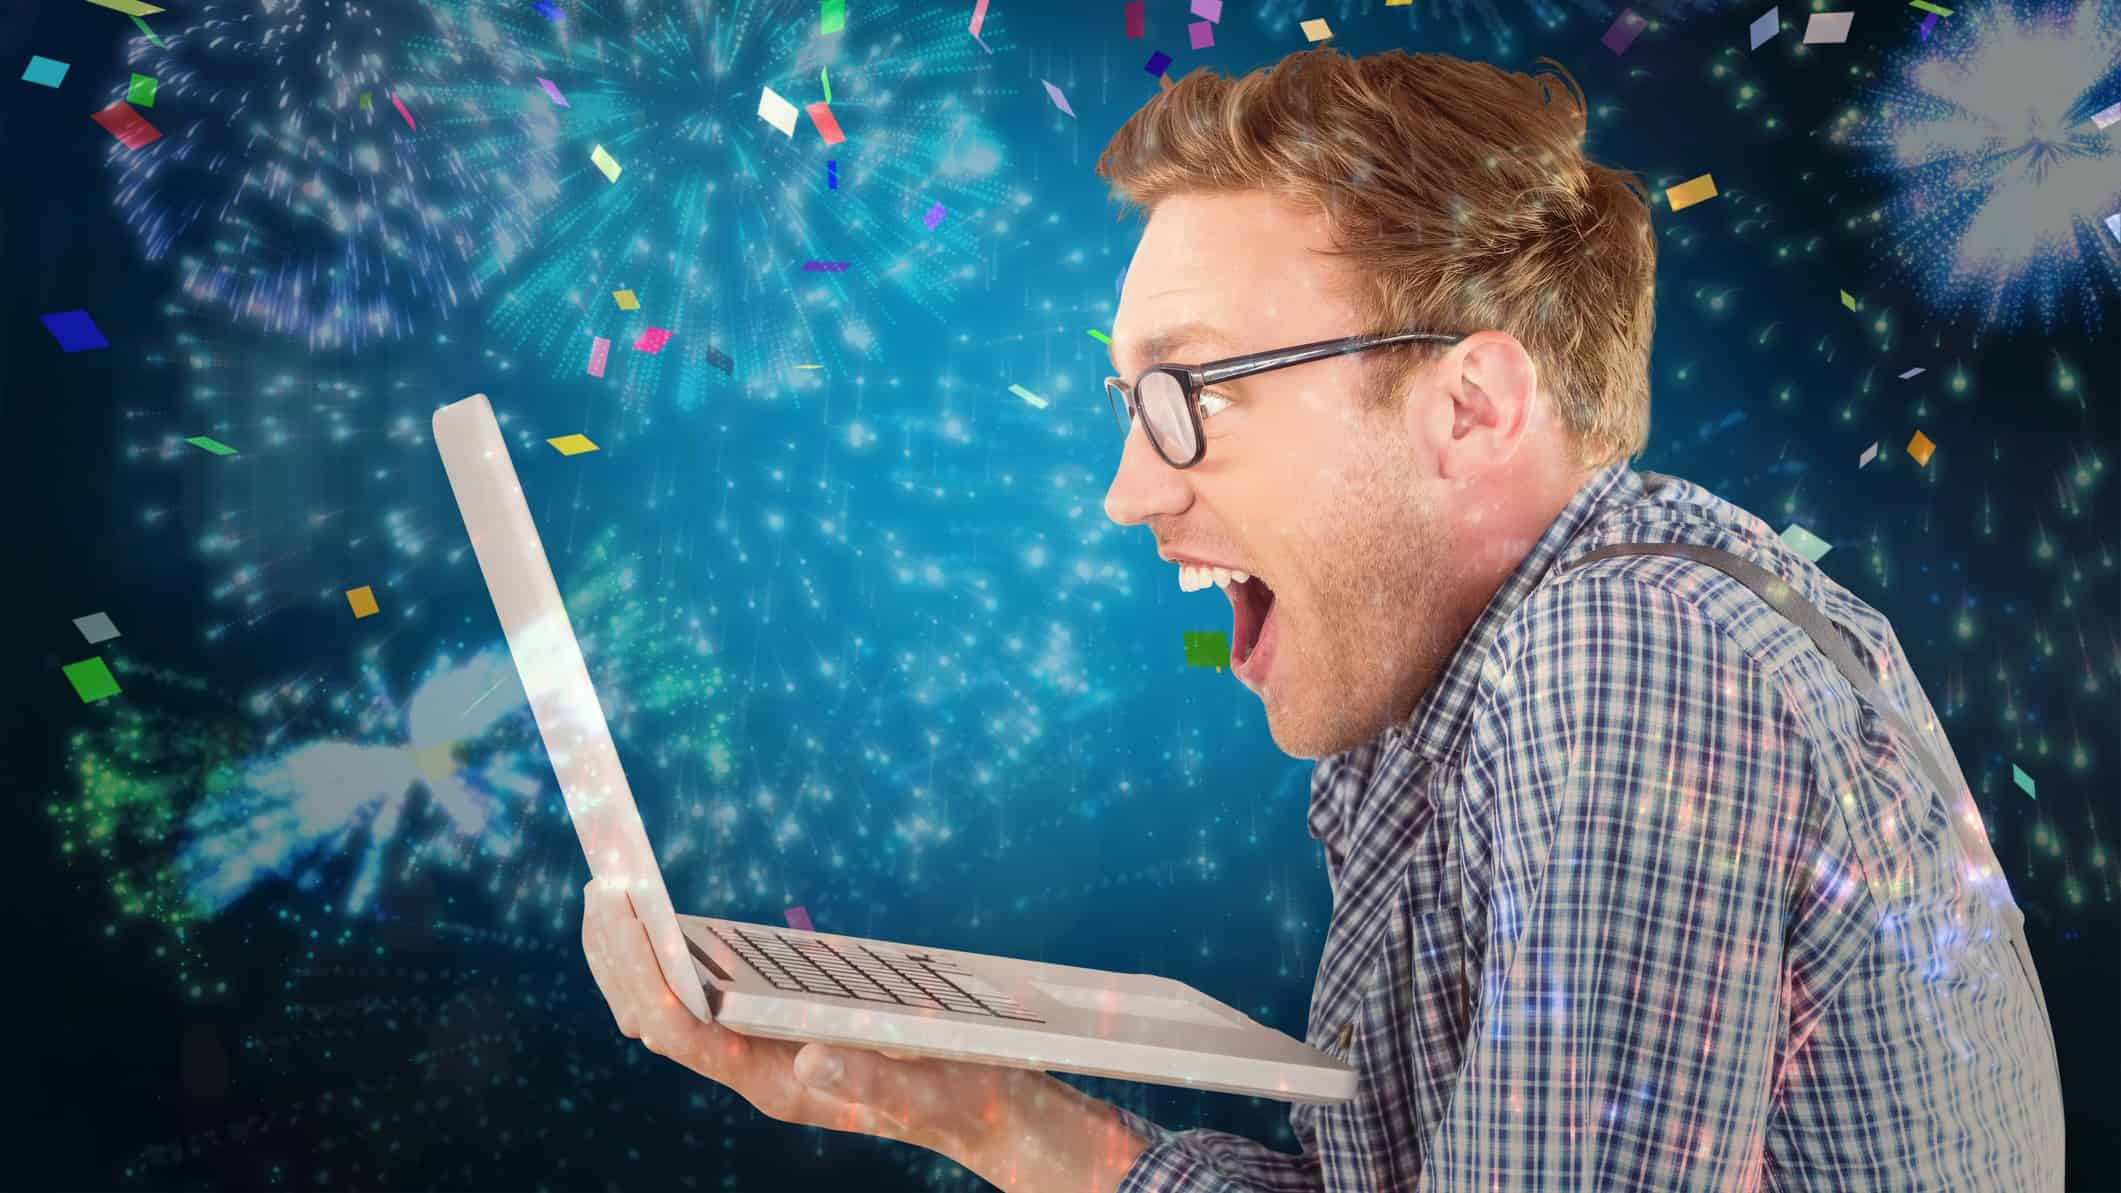 Man looking excitedly at ASX share price gains on computer screen against backdrop of streamers